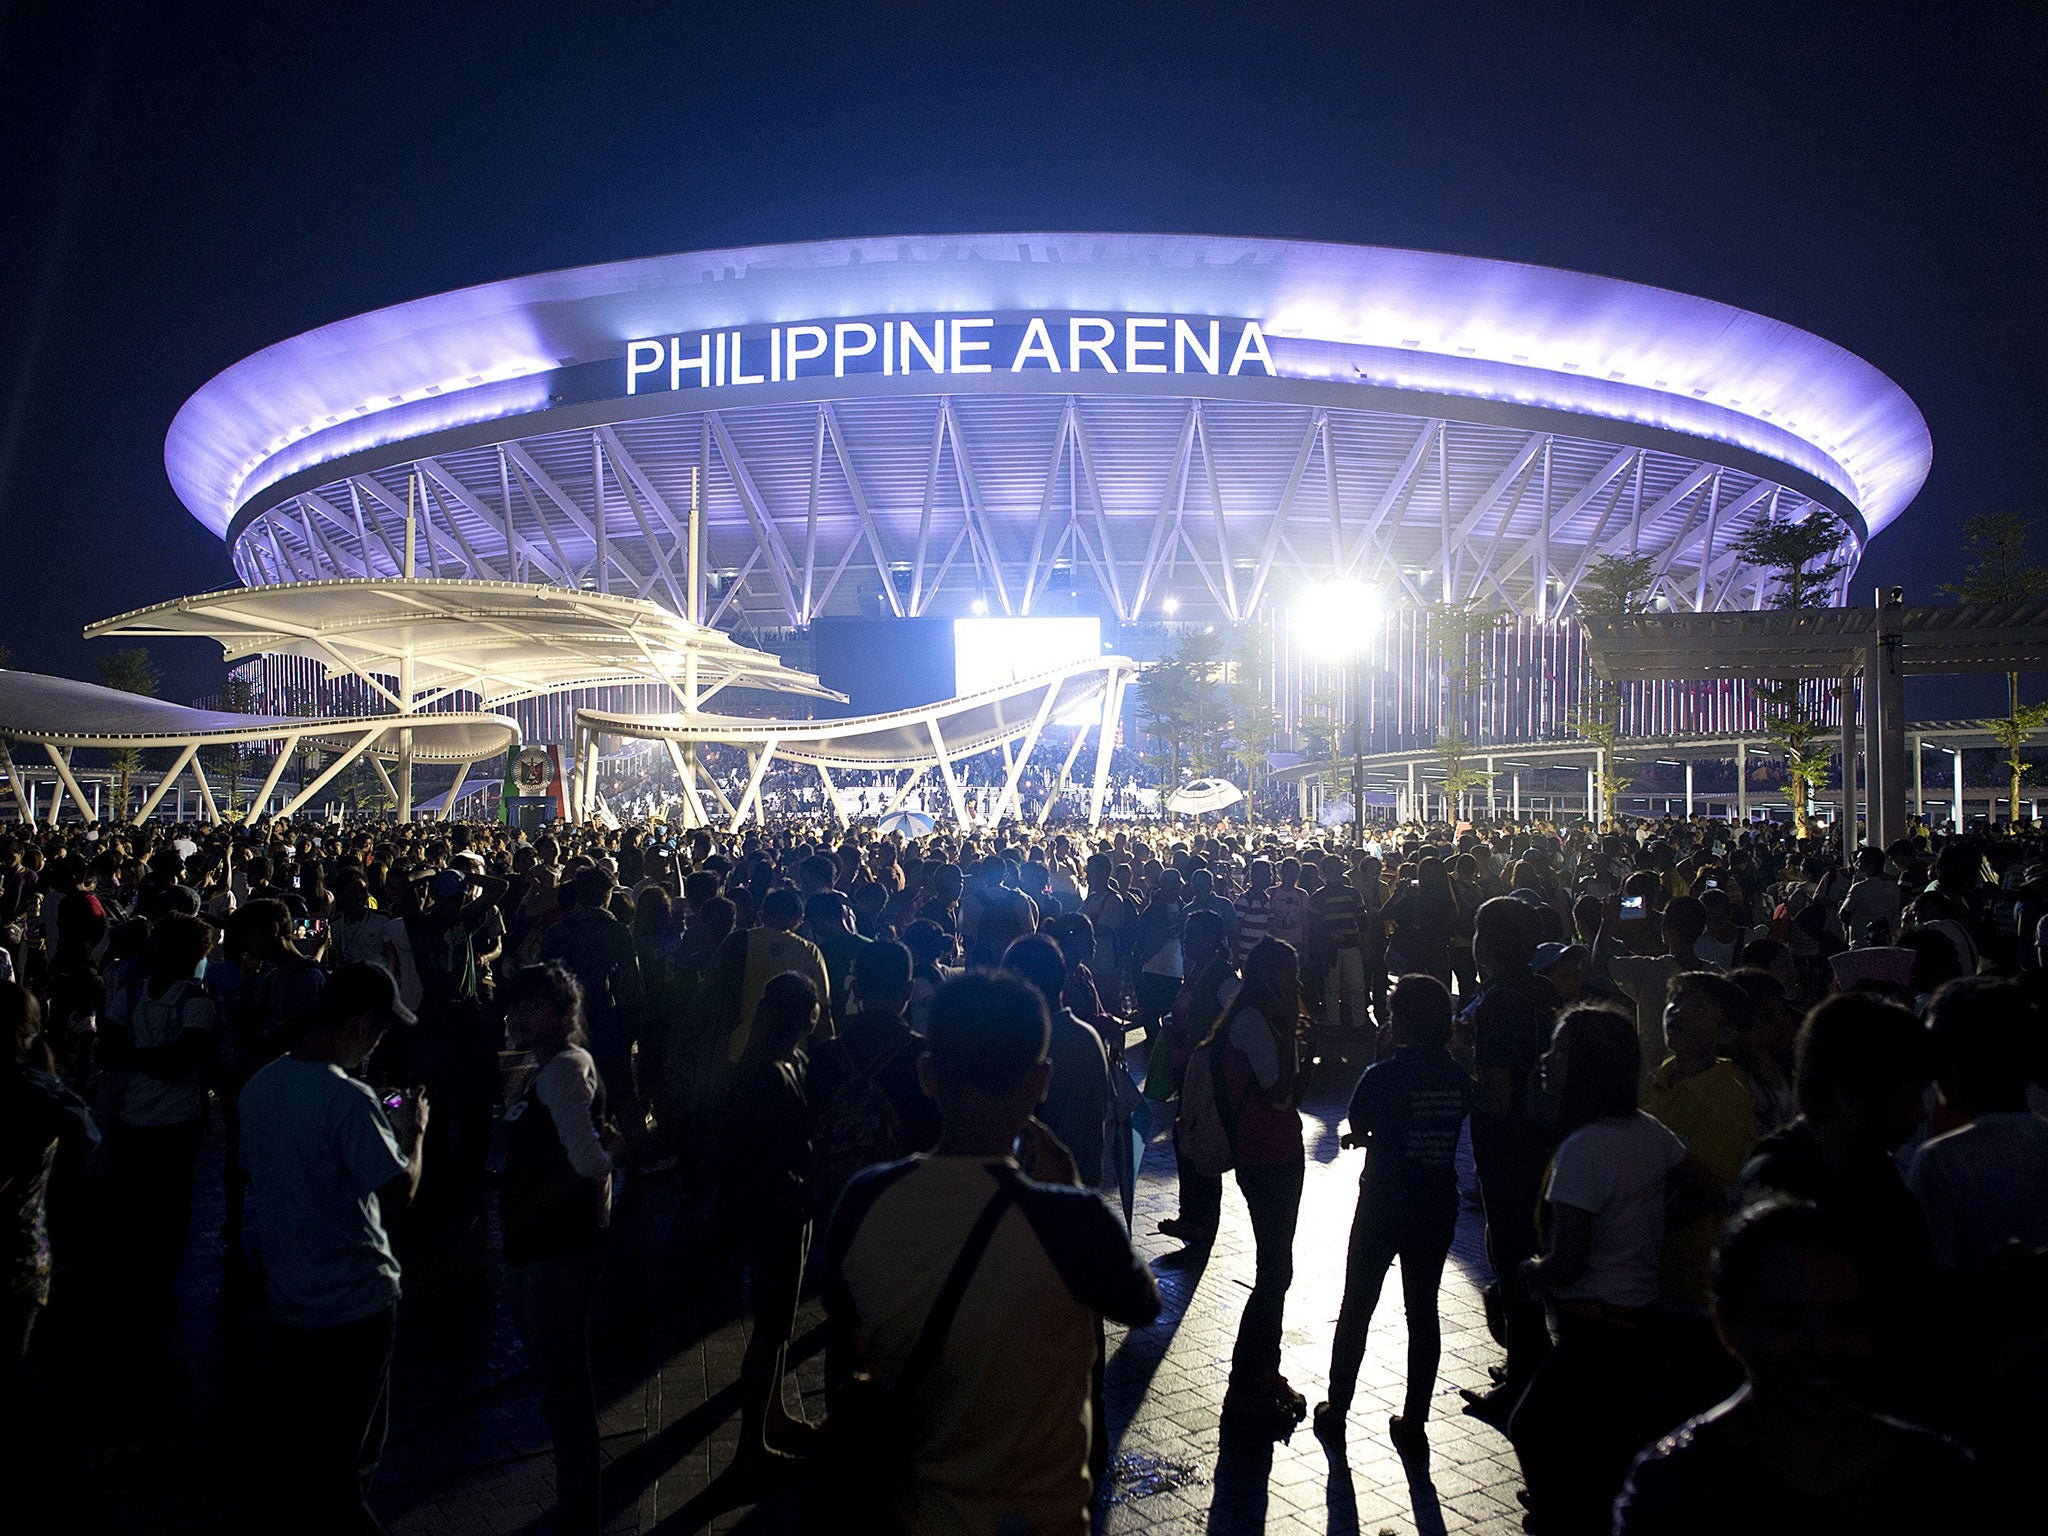 Pba Expect Record Crowd At The Philippine Arena The World